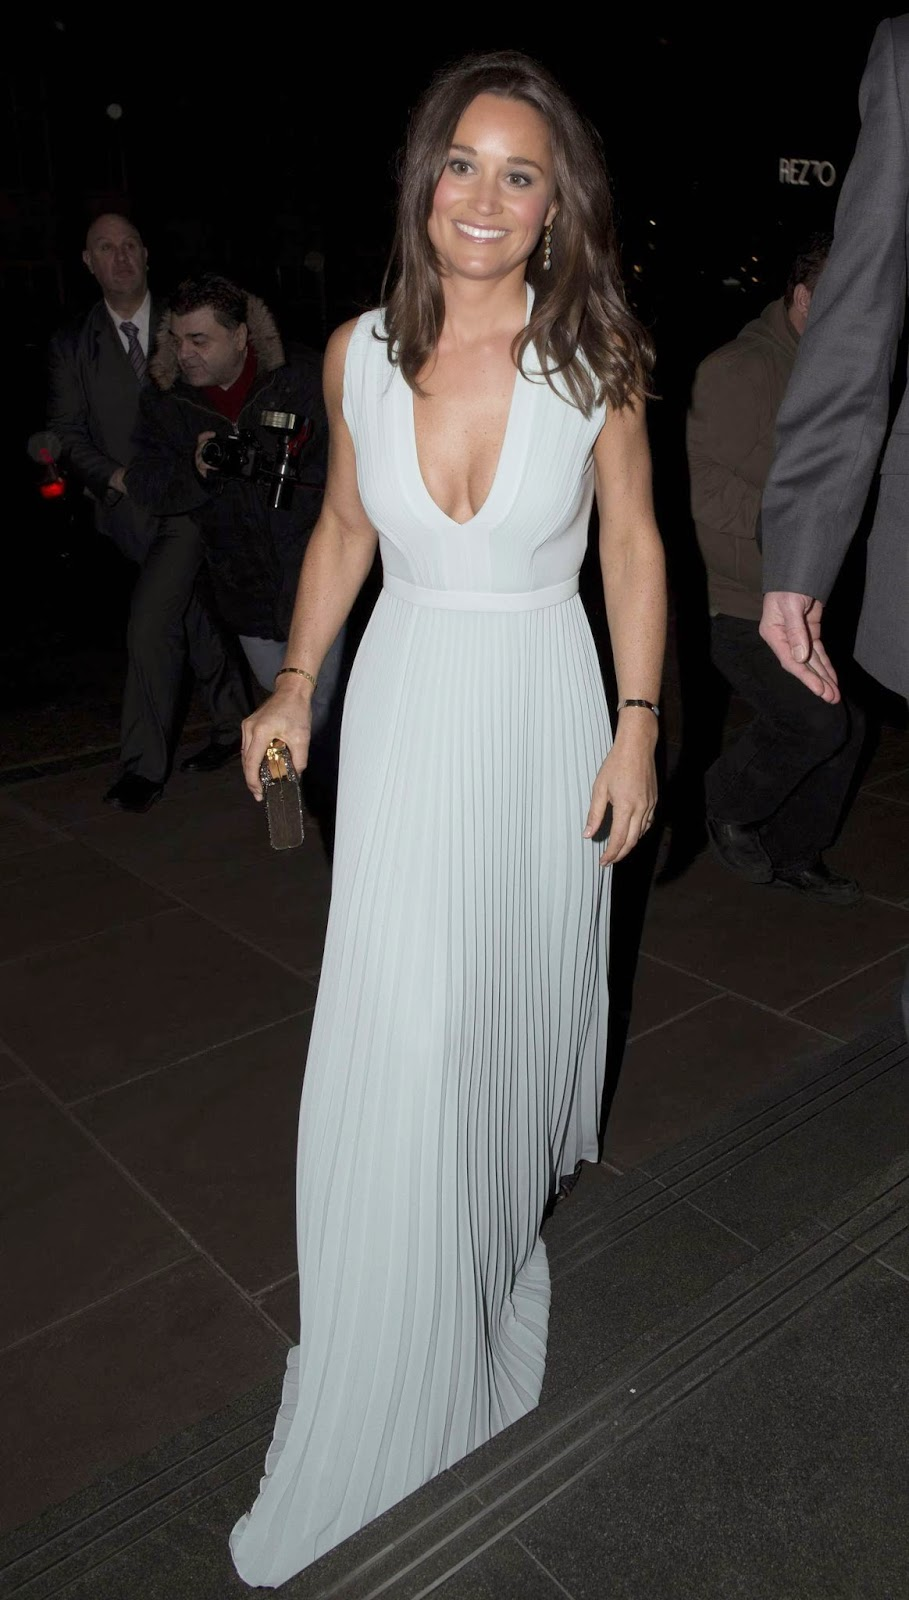 Pippa Middleton in a plunging Hugo Boss dress at the ParaSnowBall in London